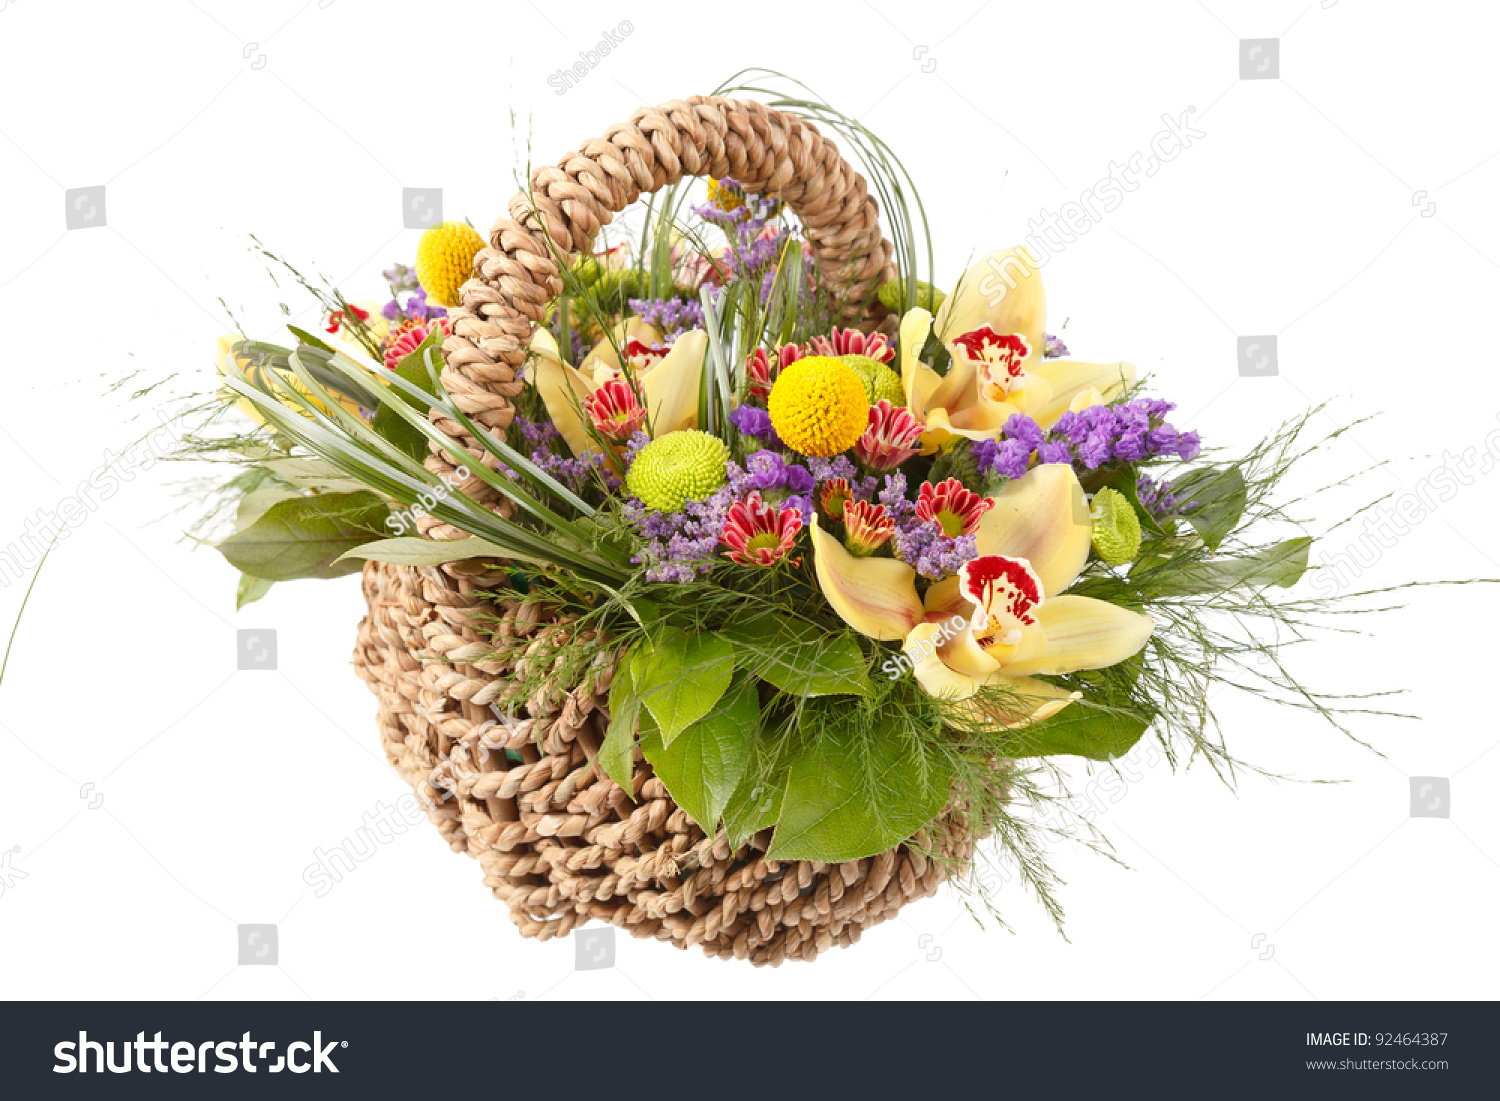 Beautiful Flowers Basket Stock Photo Edit Now 92464387 Shutterstock